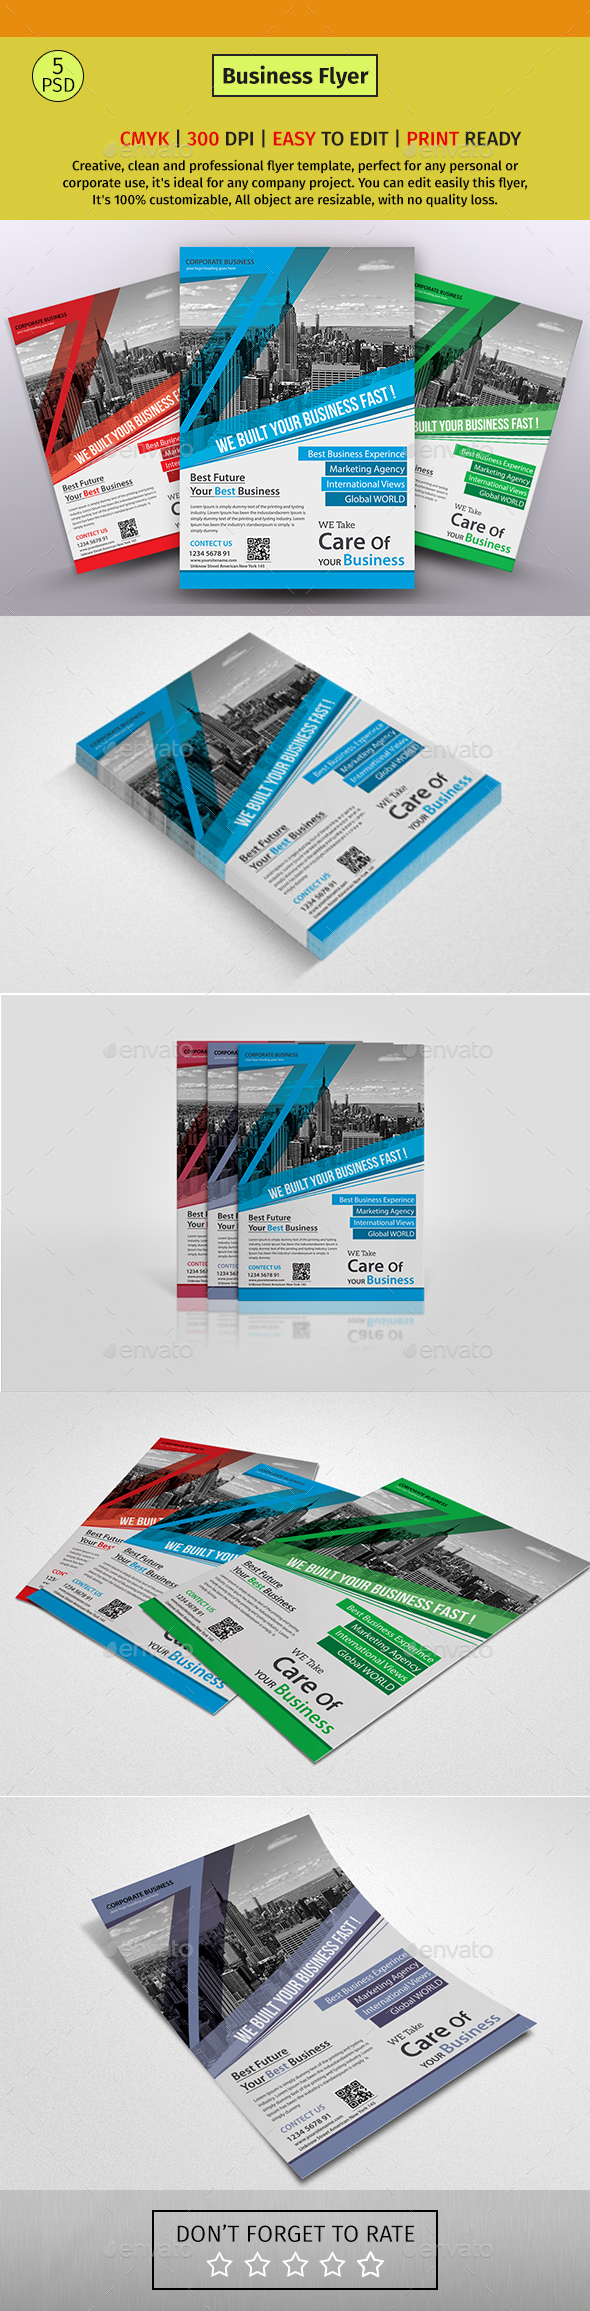 GraphicRiver A4 Corporate Business Flyer #42 20613351